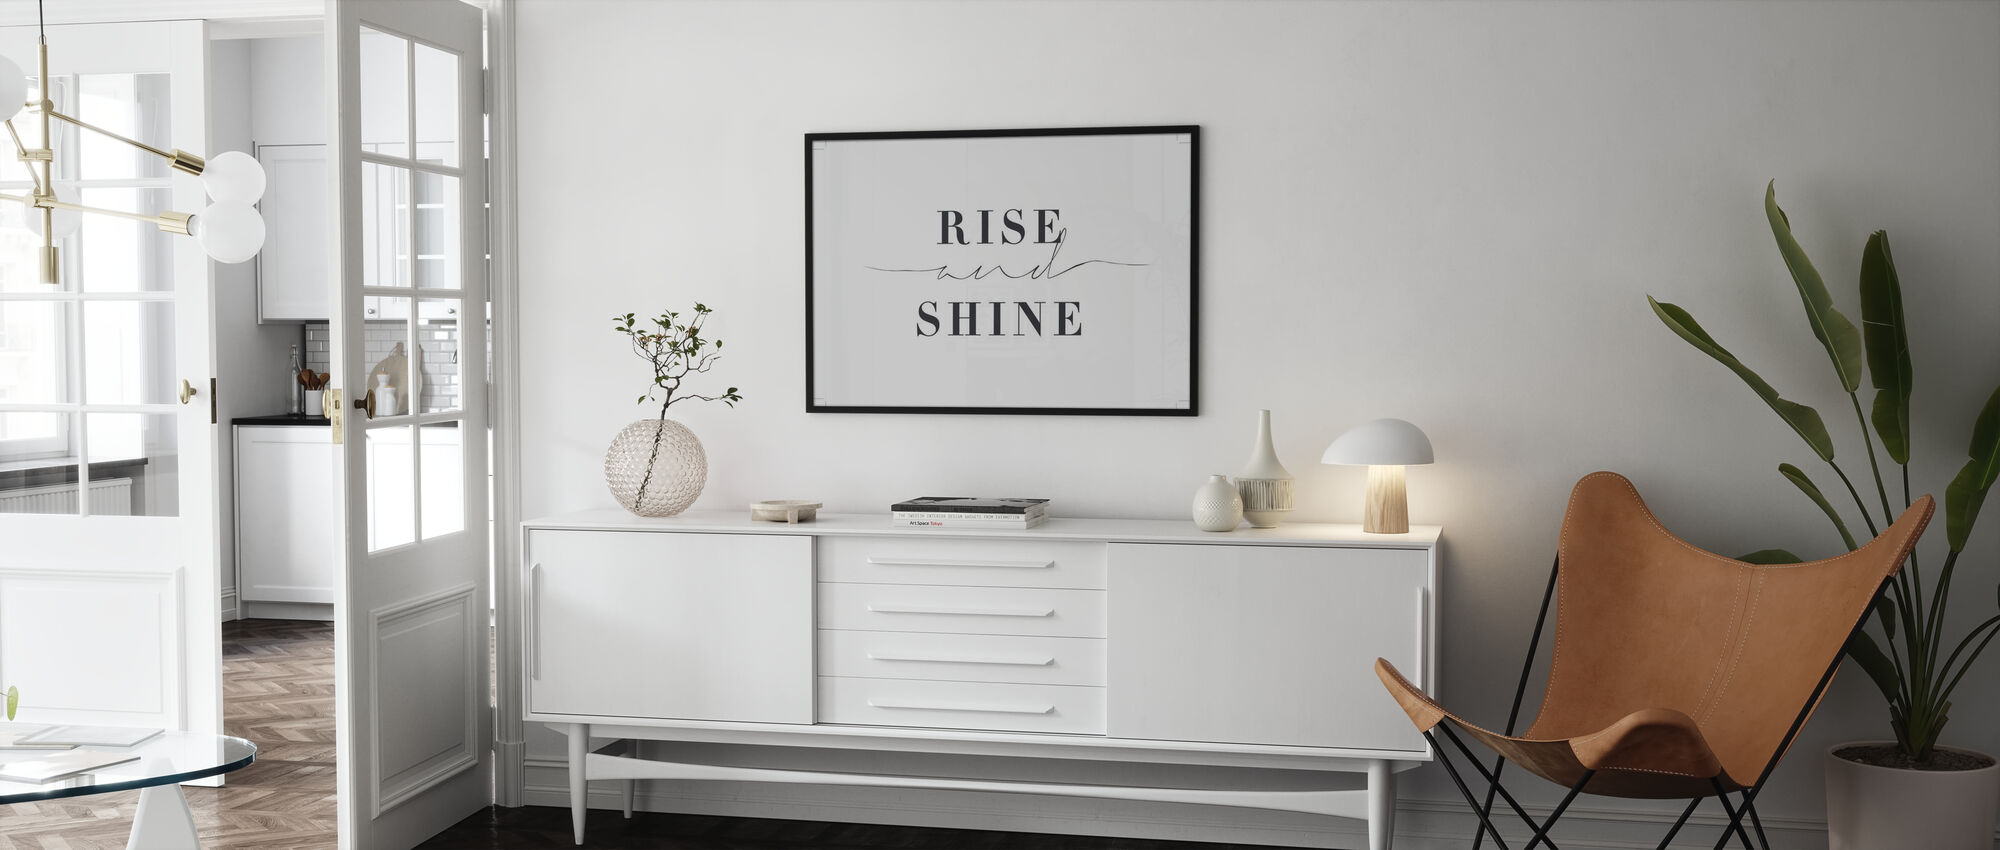 Rise and Shine - Poster - Living Room